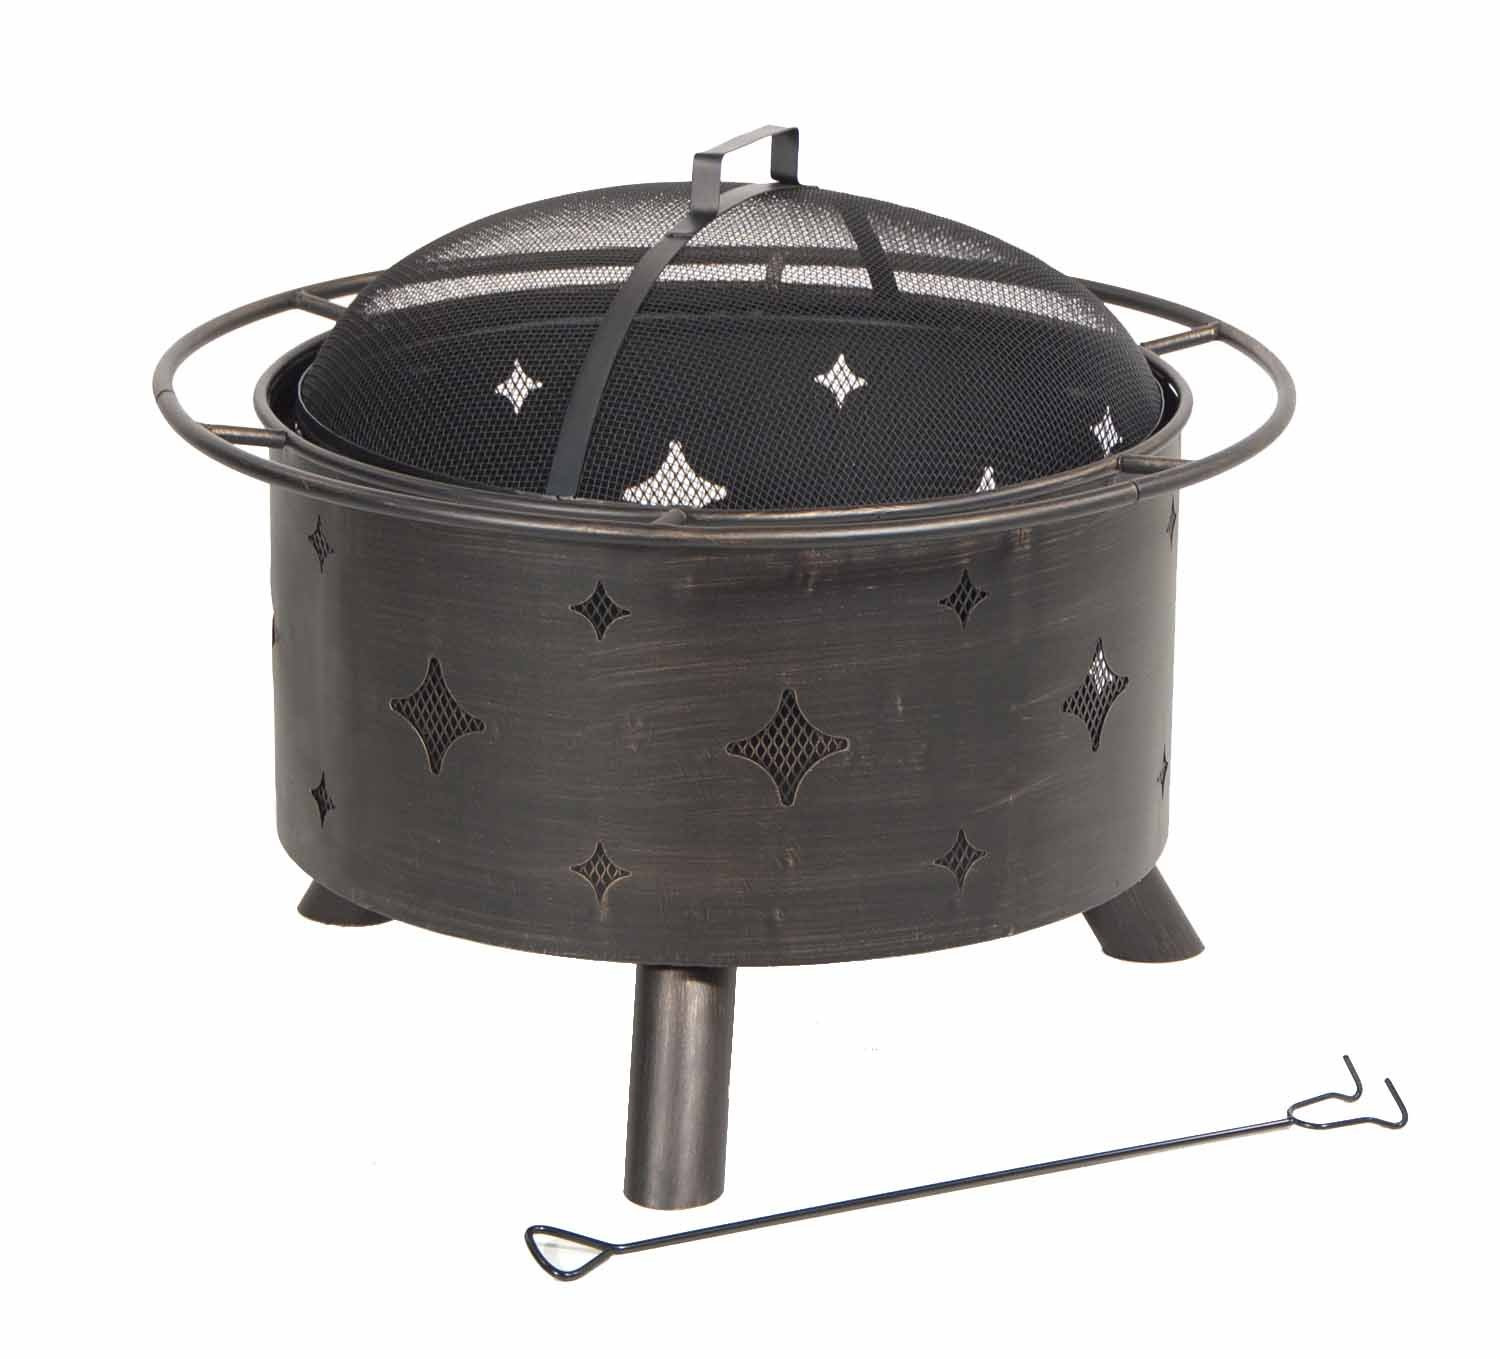 DeckMate 991047 Kay Home Product'S Lantana Steel Fire Bowl - Decorative diamond shaped cutouts enhance warmth and glow from this stylish outdoor fireplace Three sturdy steel legs assure stability and the steel log grate allows circulation and air flow The wire mesh spark screen provides protection from sparks and allows for an open view of the fire - patio, outdoor-decor, fire-pits-outdoor-fireplaces - 61mnvOkqxSL -